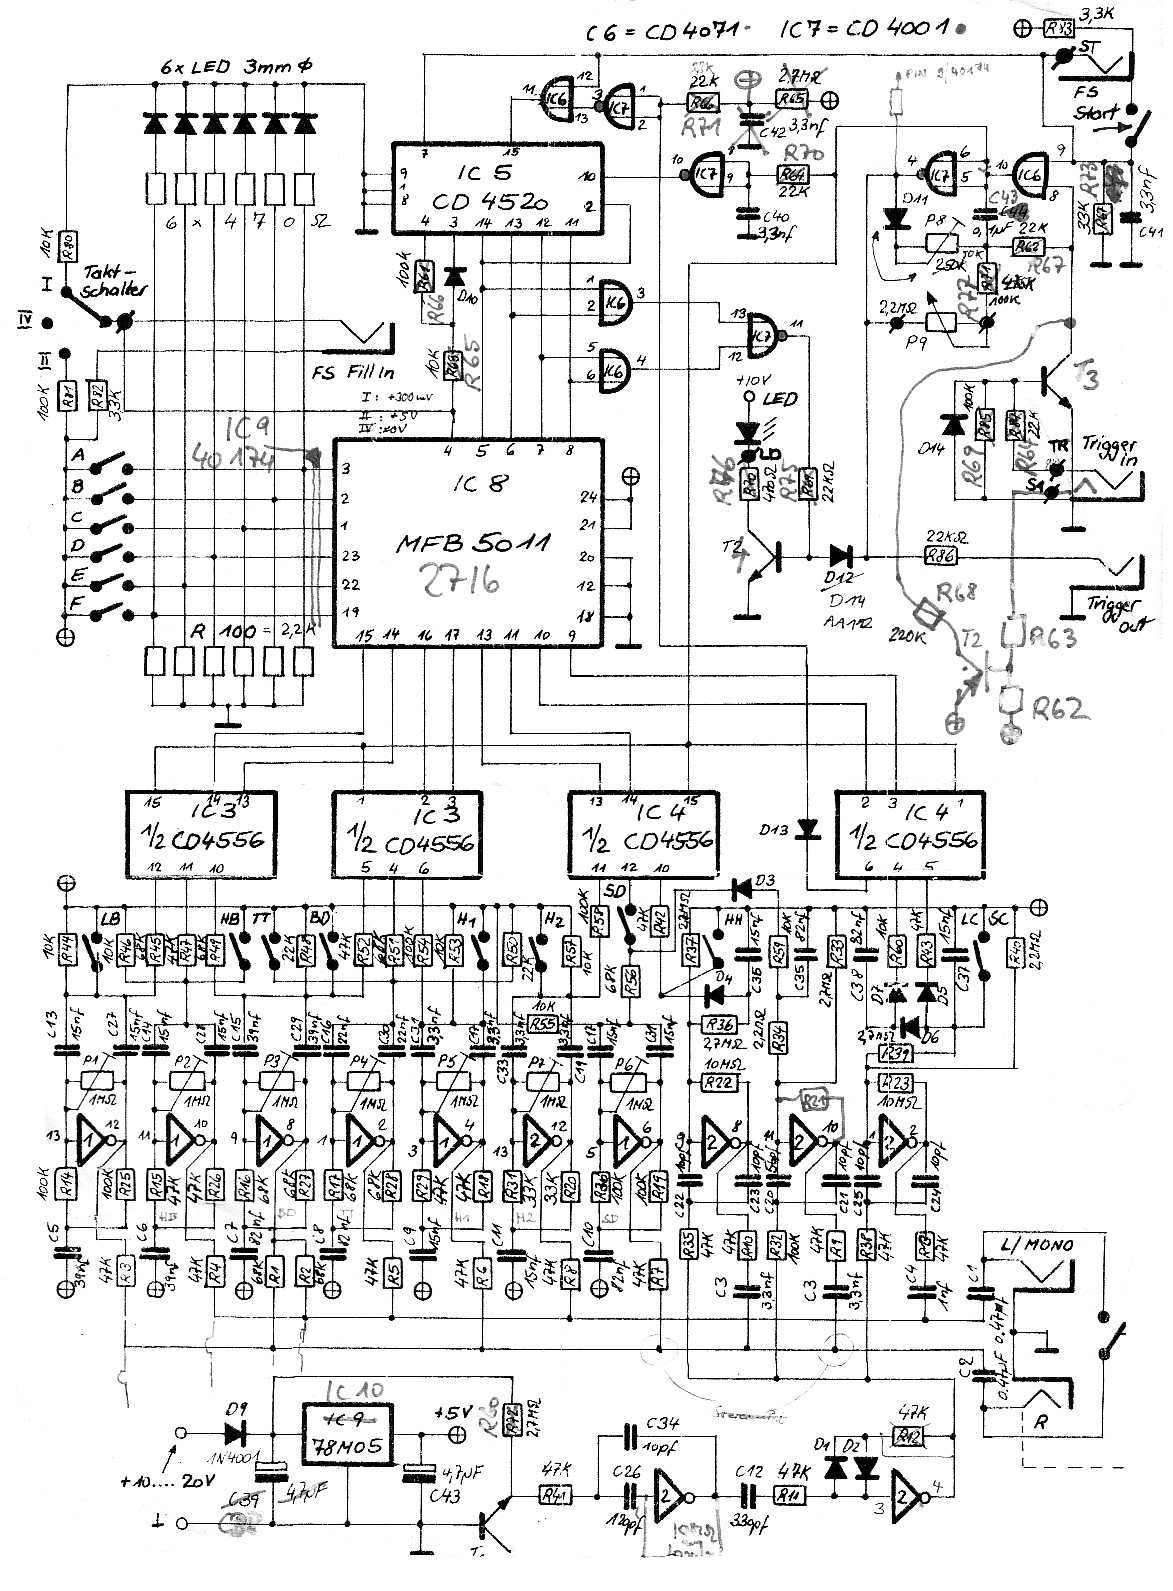 Schematic Wiring Circuit Boss on yamaha motorcycle schematics